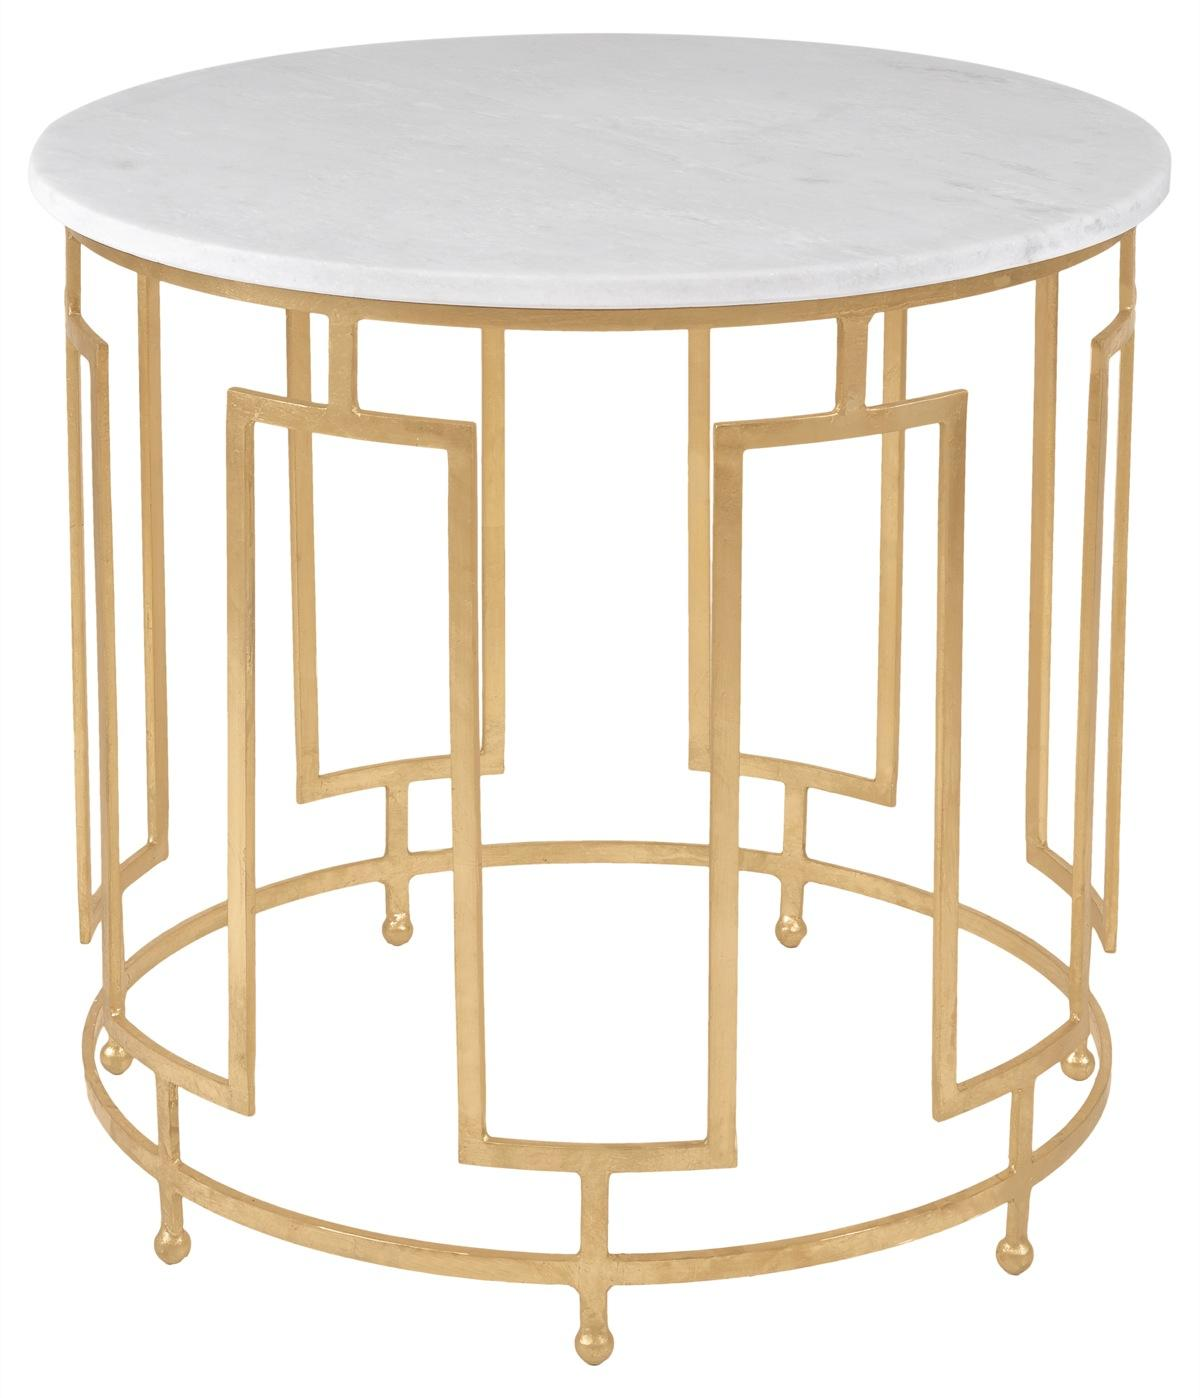 marble accent table limetennis front signy drum with top caldwell white ikea storage units bedroom dinner keter cool bar purple tiffany lamp sets outdoor living furniture blue and